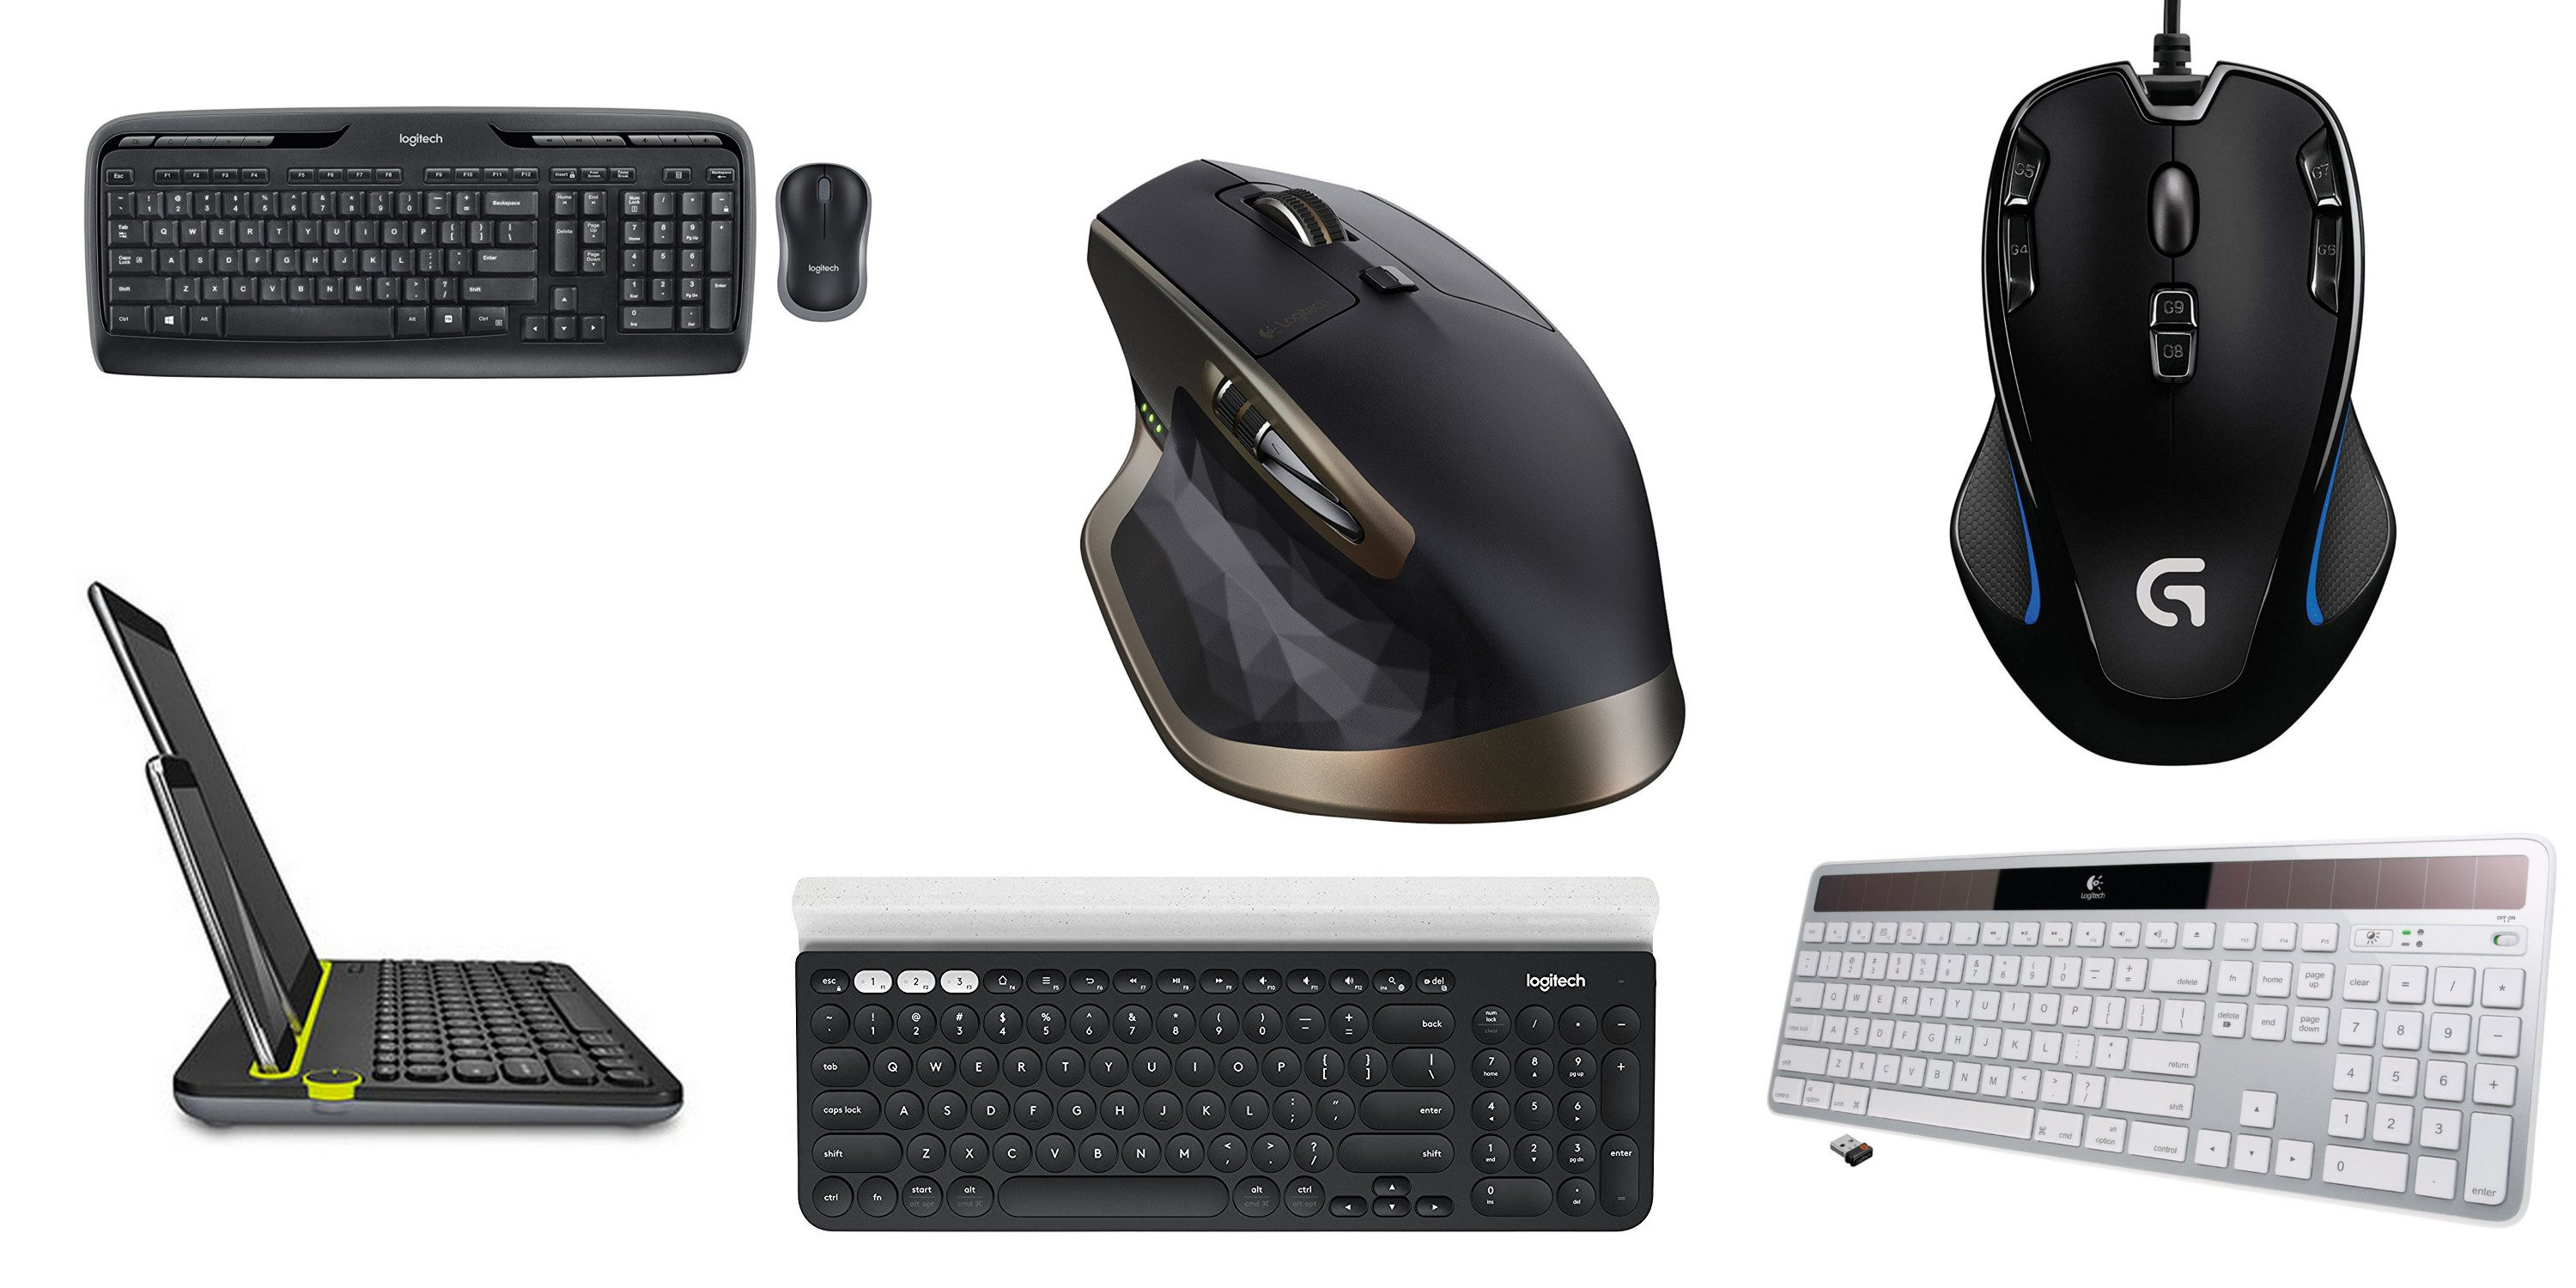 9to5Toys Lunch Break: Logitech Sale from $14, Satechi iPhone/Mac Accessories 15% off, MacBook Pro $1,050, more